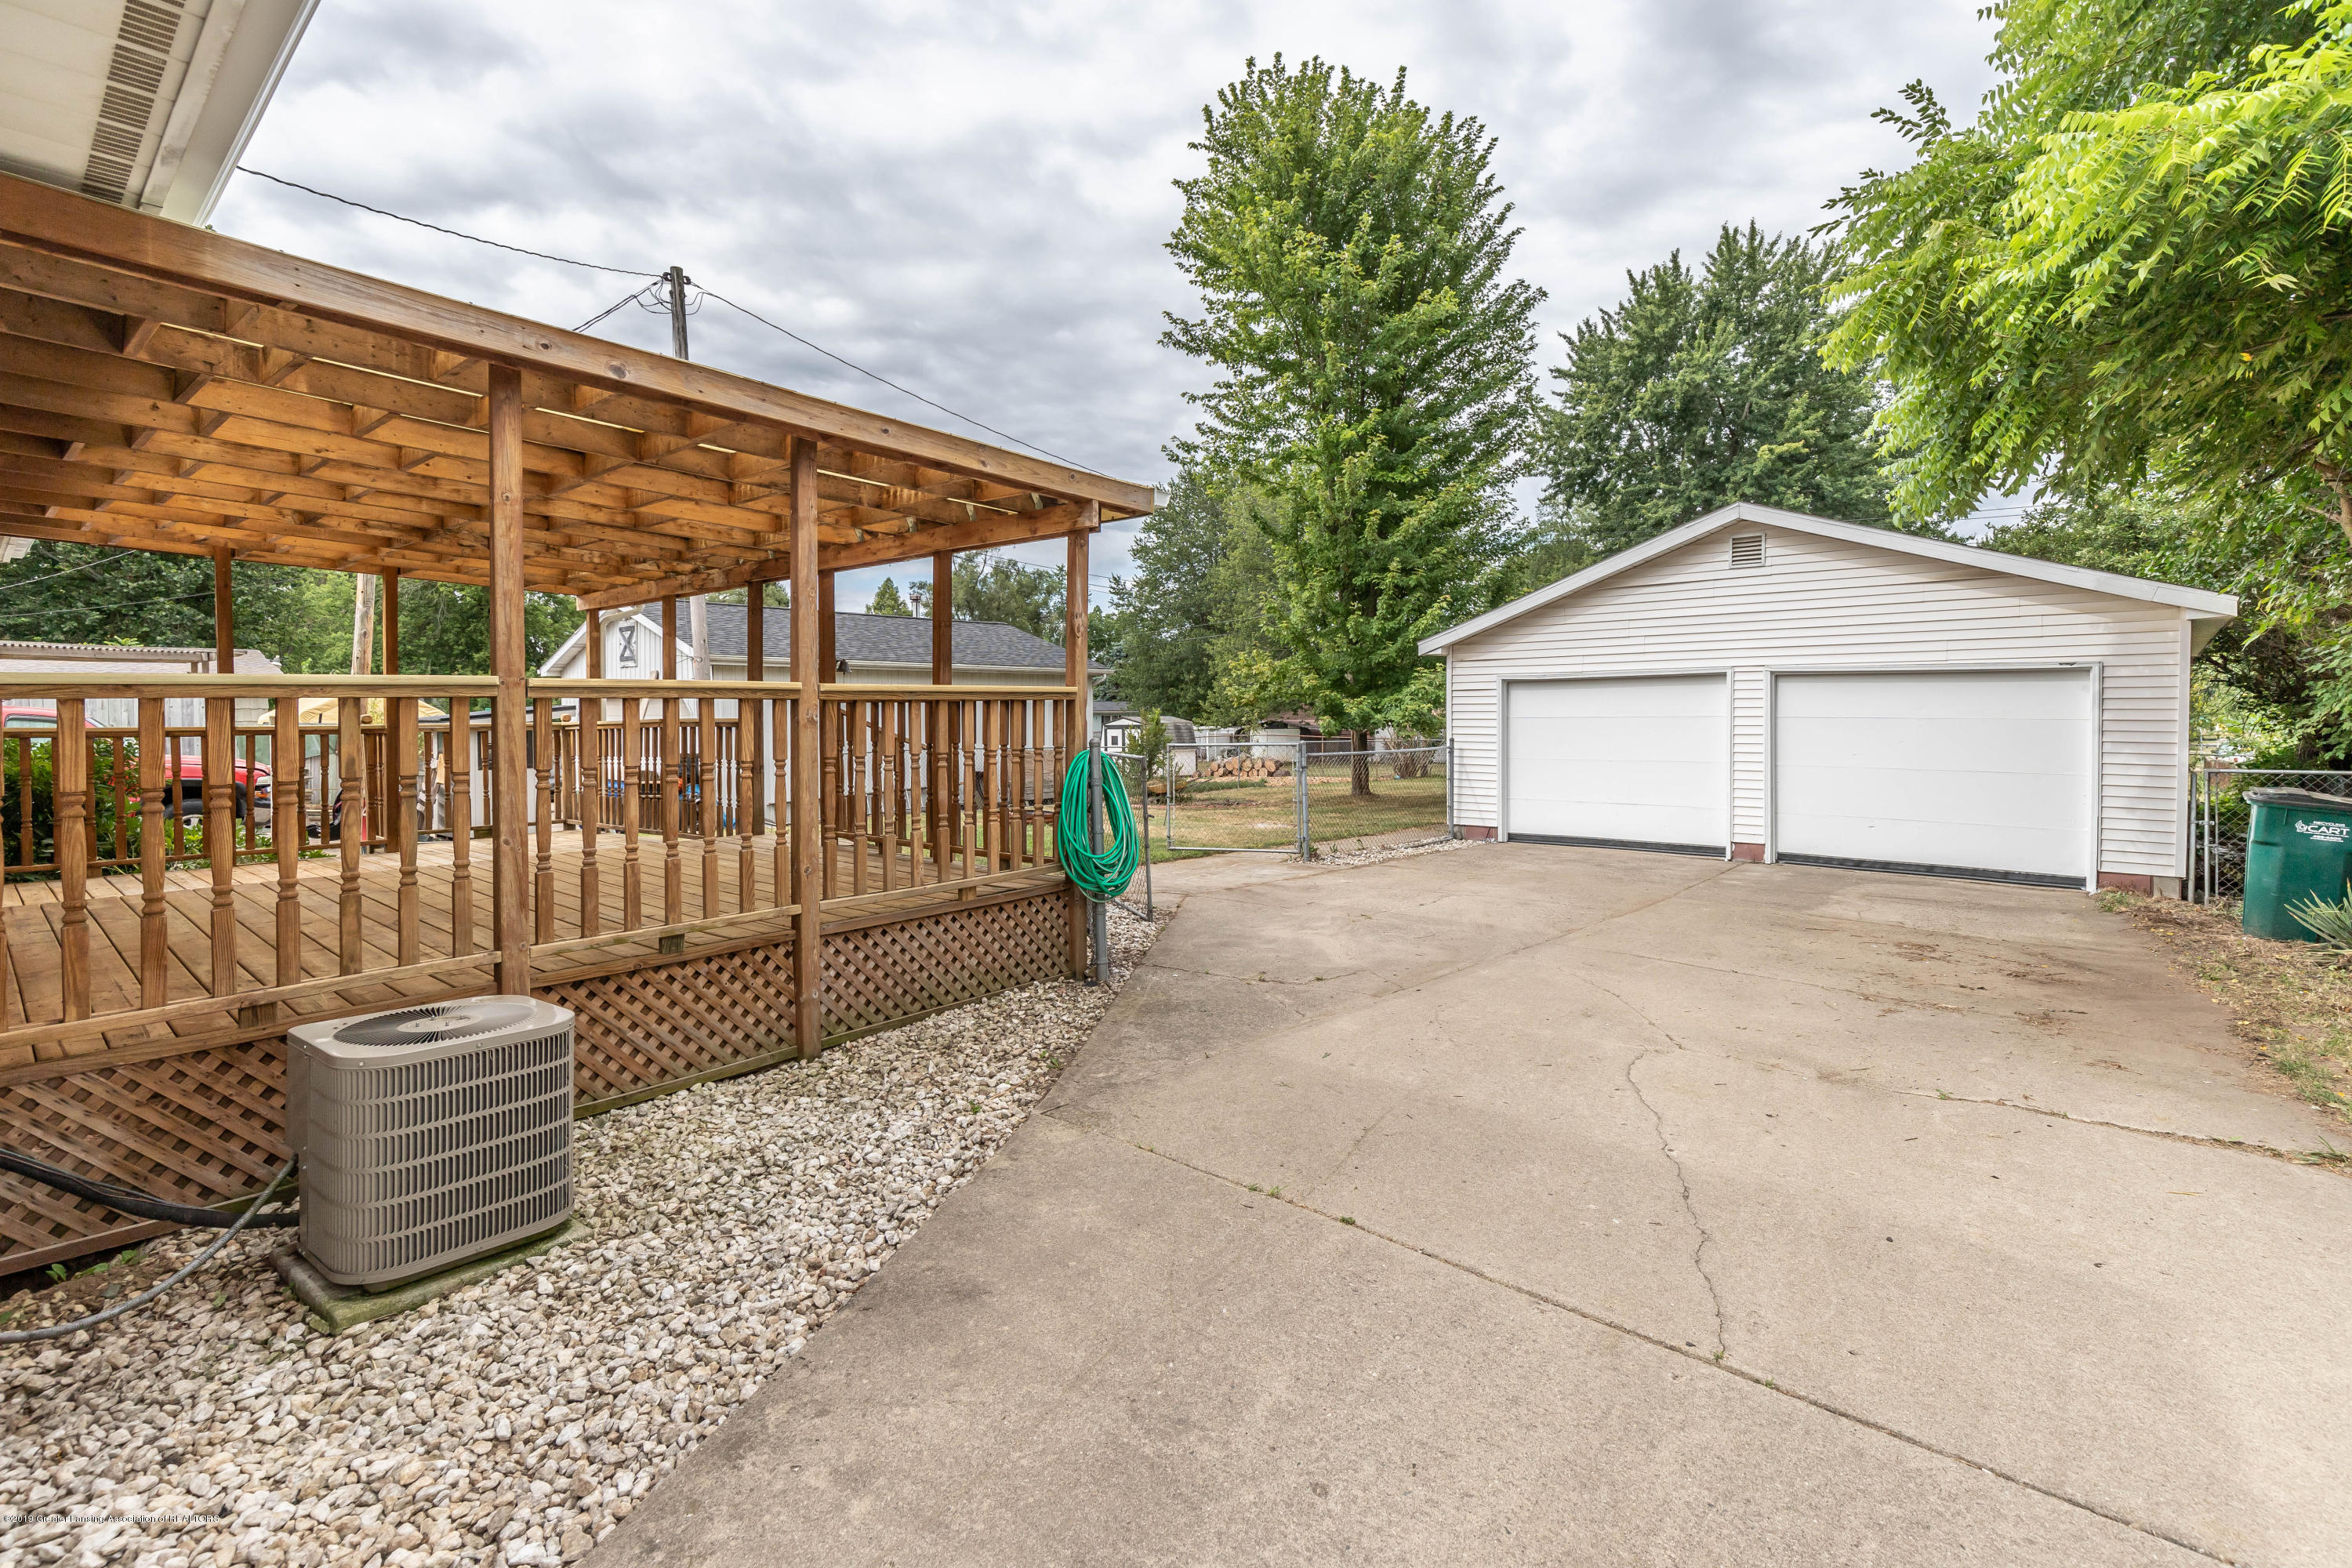 6230 Grovenburg Rd - grovenburgback (1 of 1) - 7